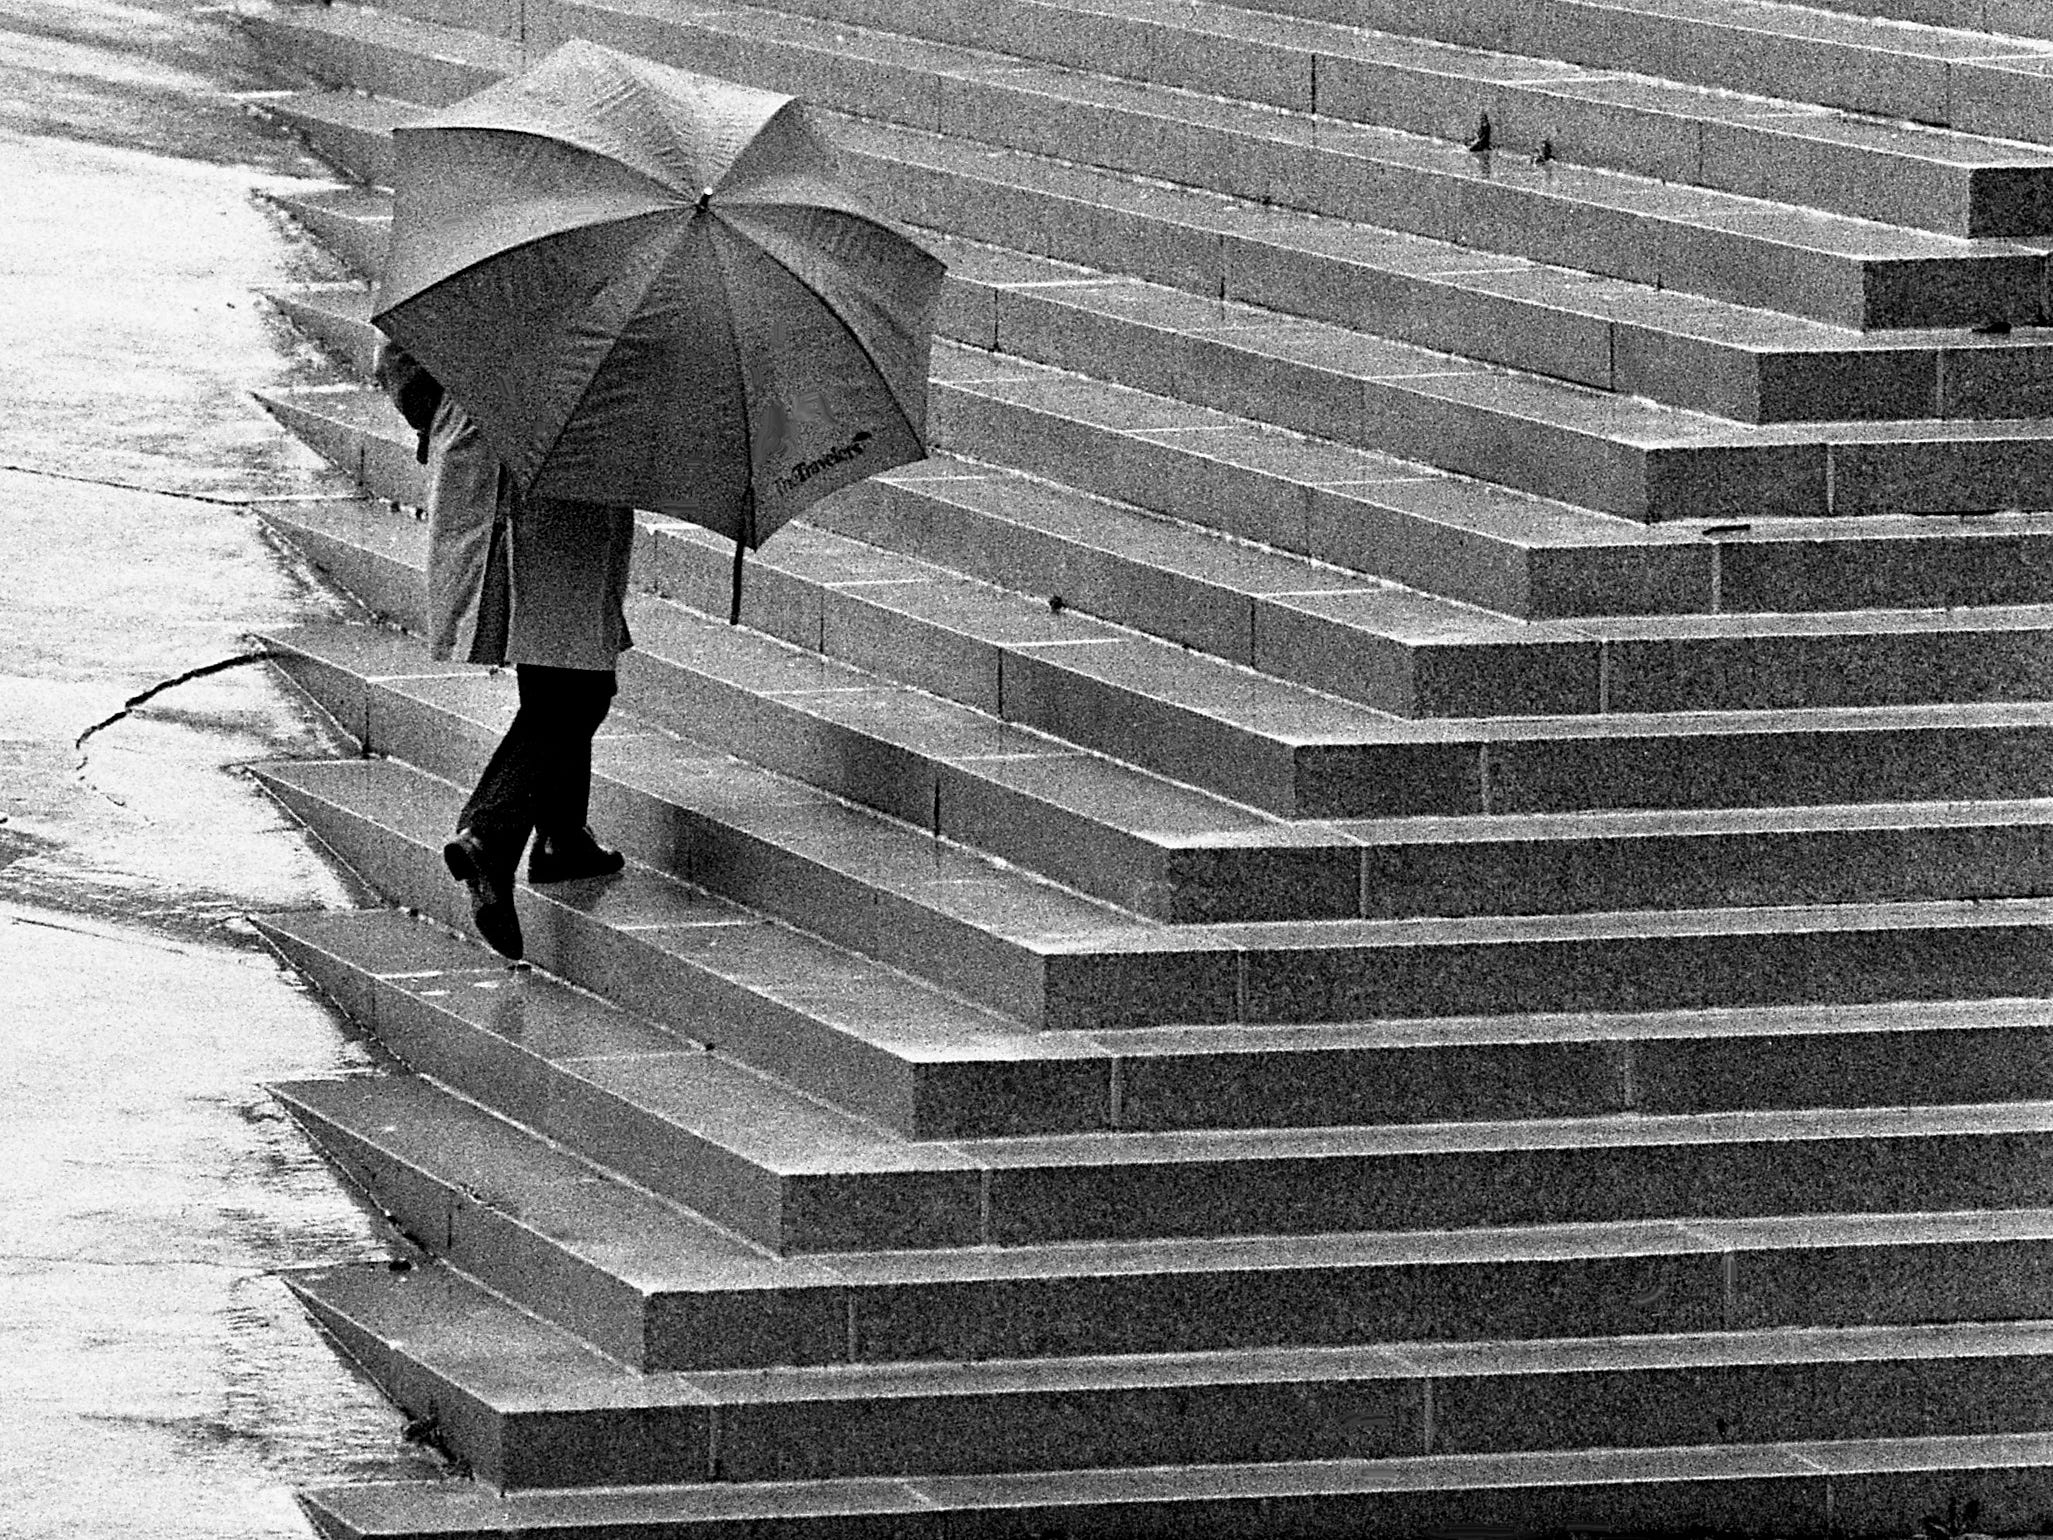 Mark Swaim's umbrella came in handy Feb. 17, 1989, as the state employee walked from the Andrew Jackson Building to the John Sevier Building in downtown Nashville.